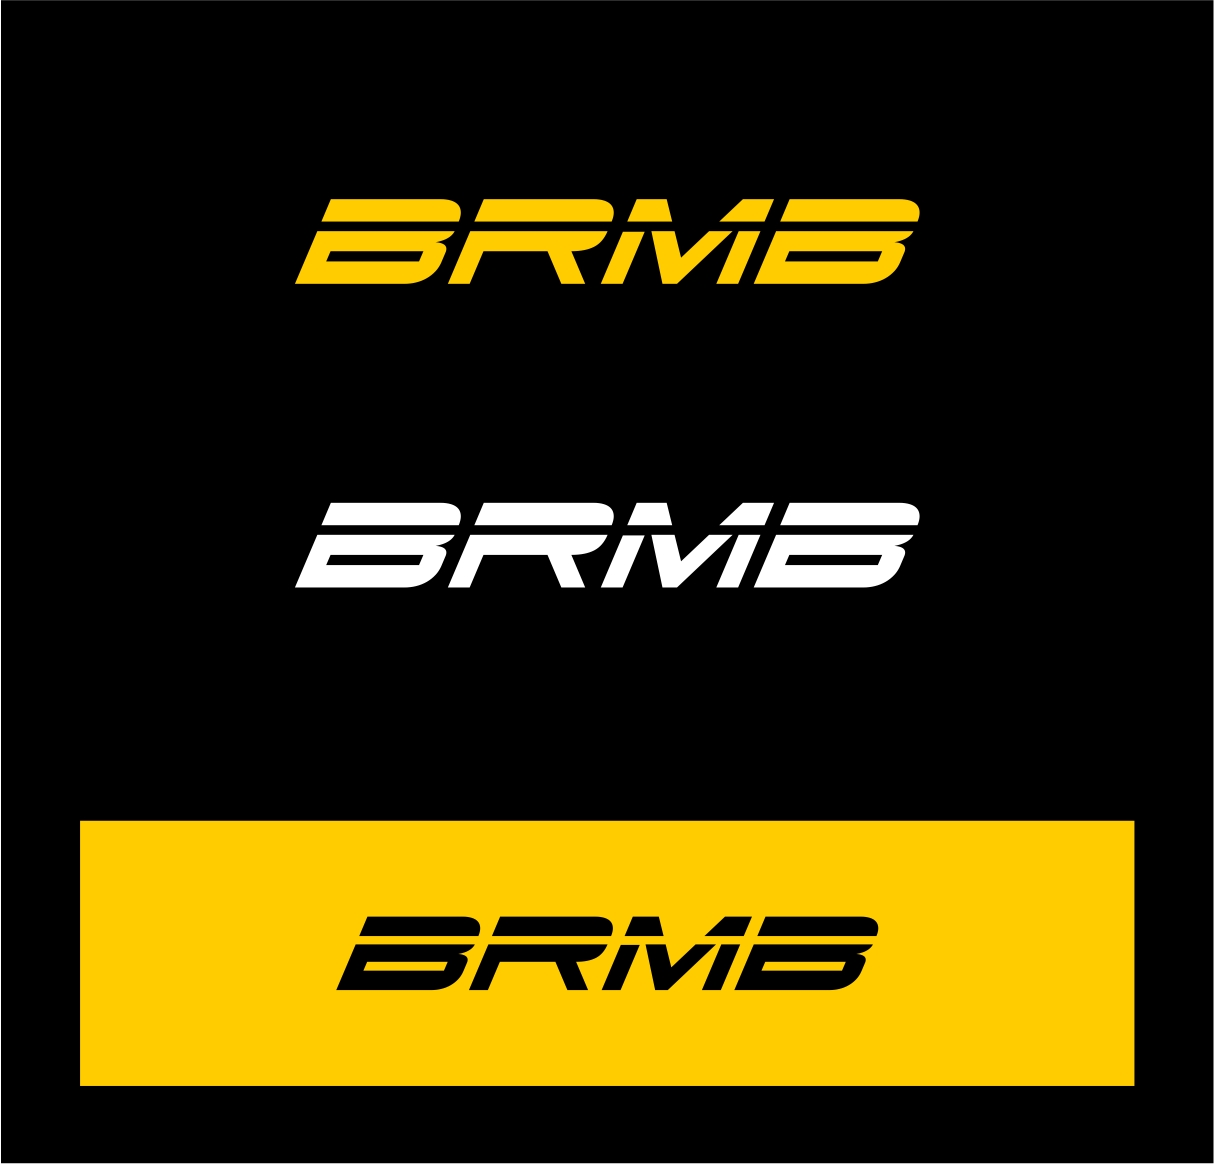 Logo Design by haidu - Entry No. 129 in the Logo Design Contest Fun Logo Design for BRMB.